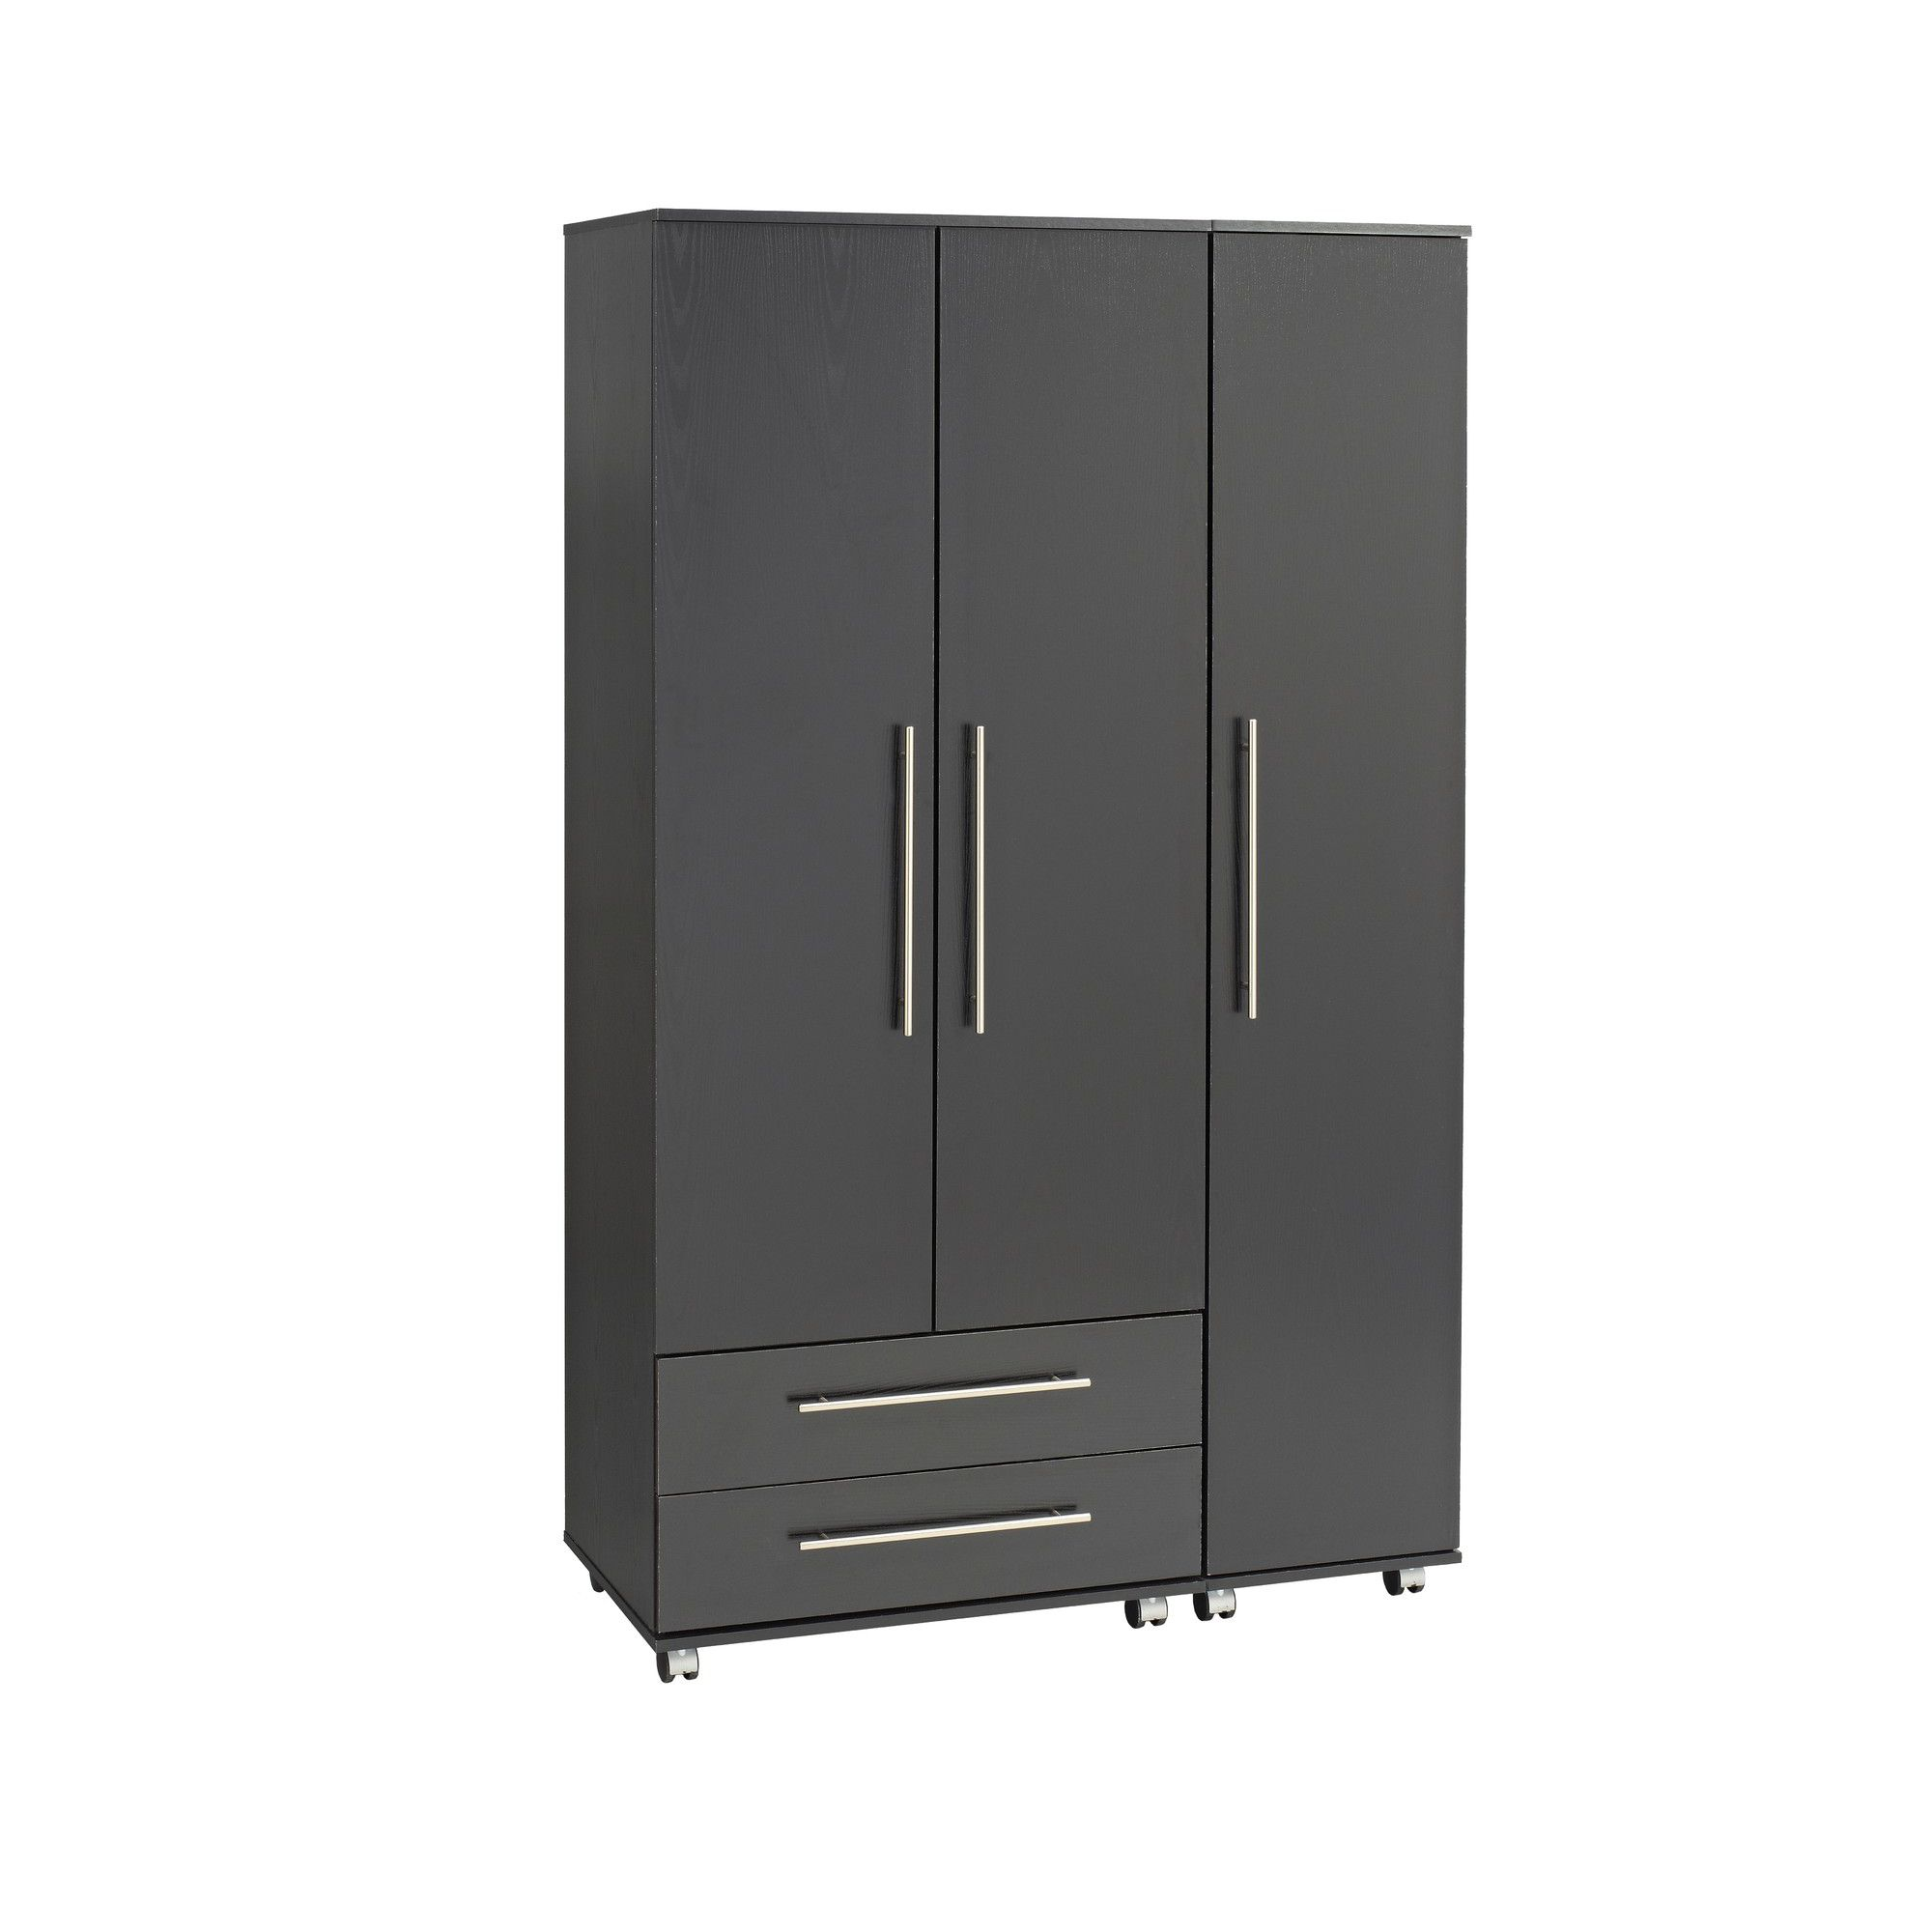 Ideal Furniture Bobby 3 Door Wardrobe - Beech at Tesco Direct